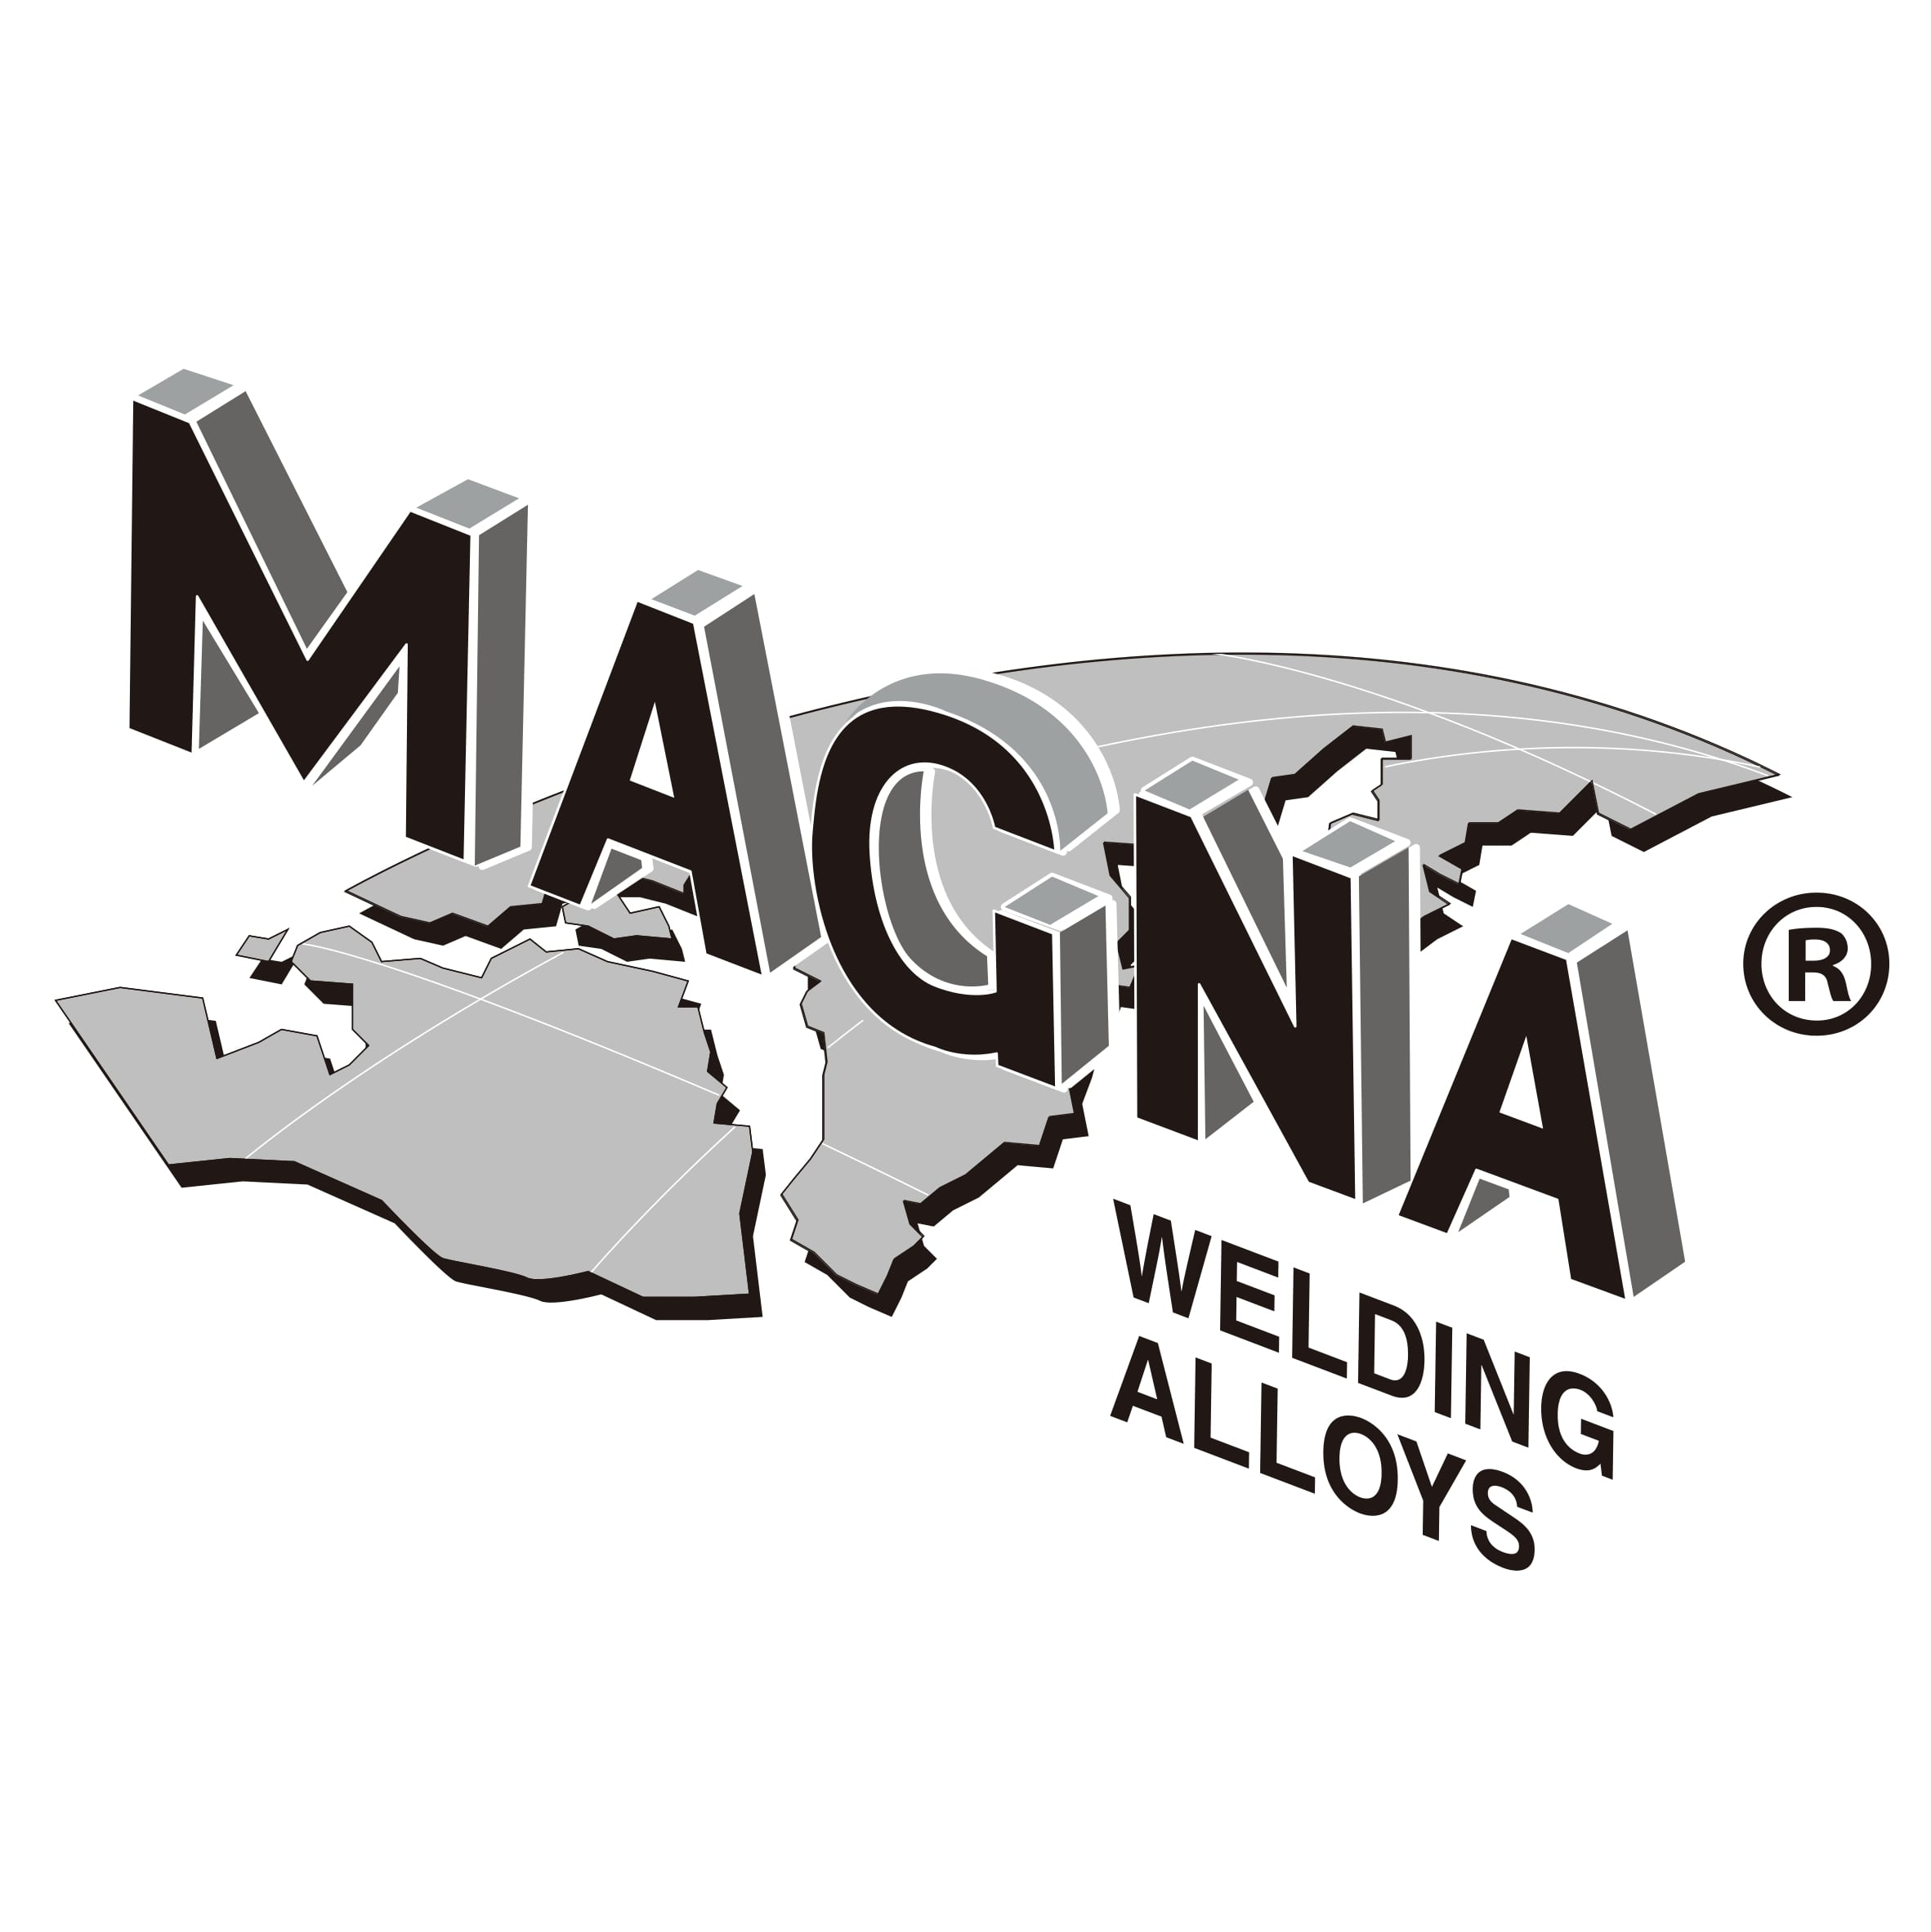 Magna speciality welding alloys by supertech services